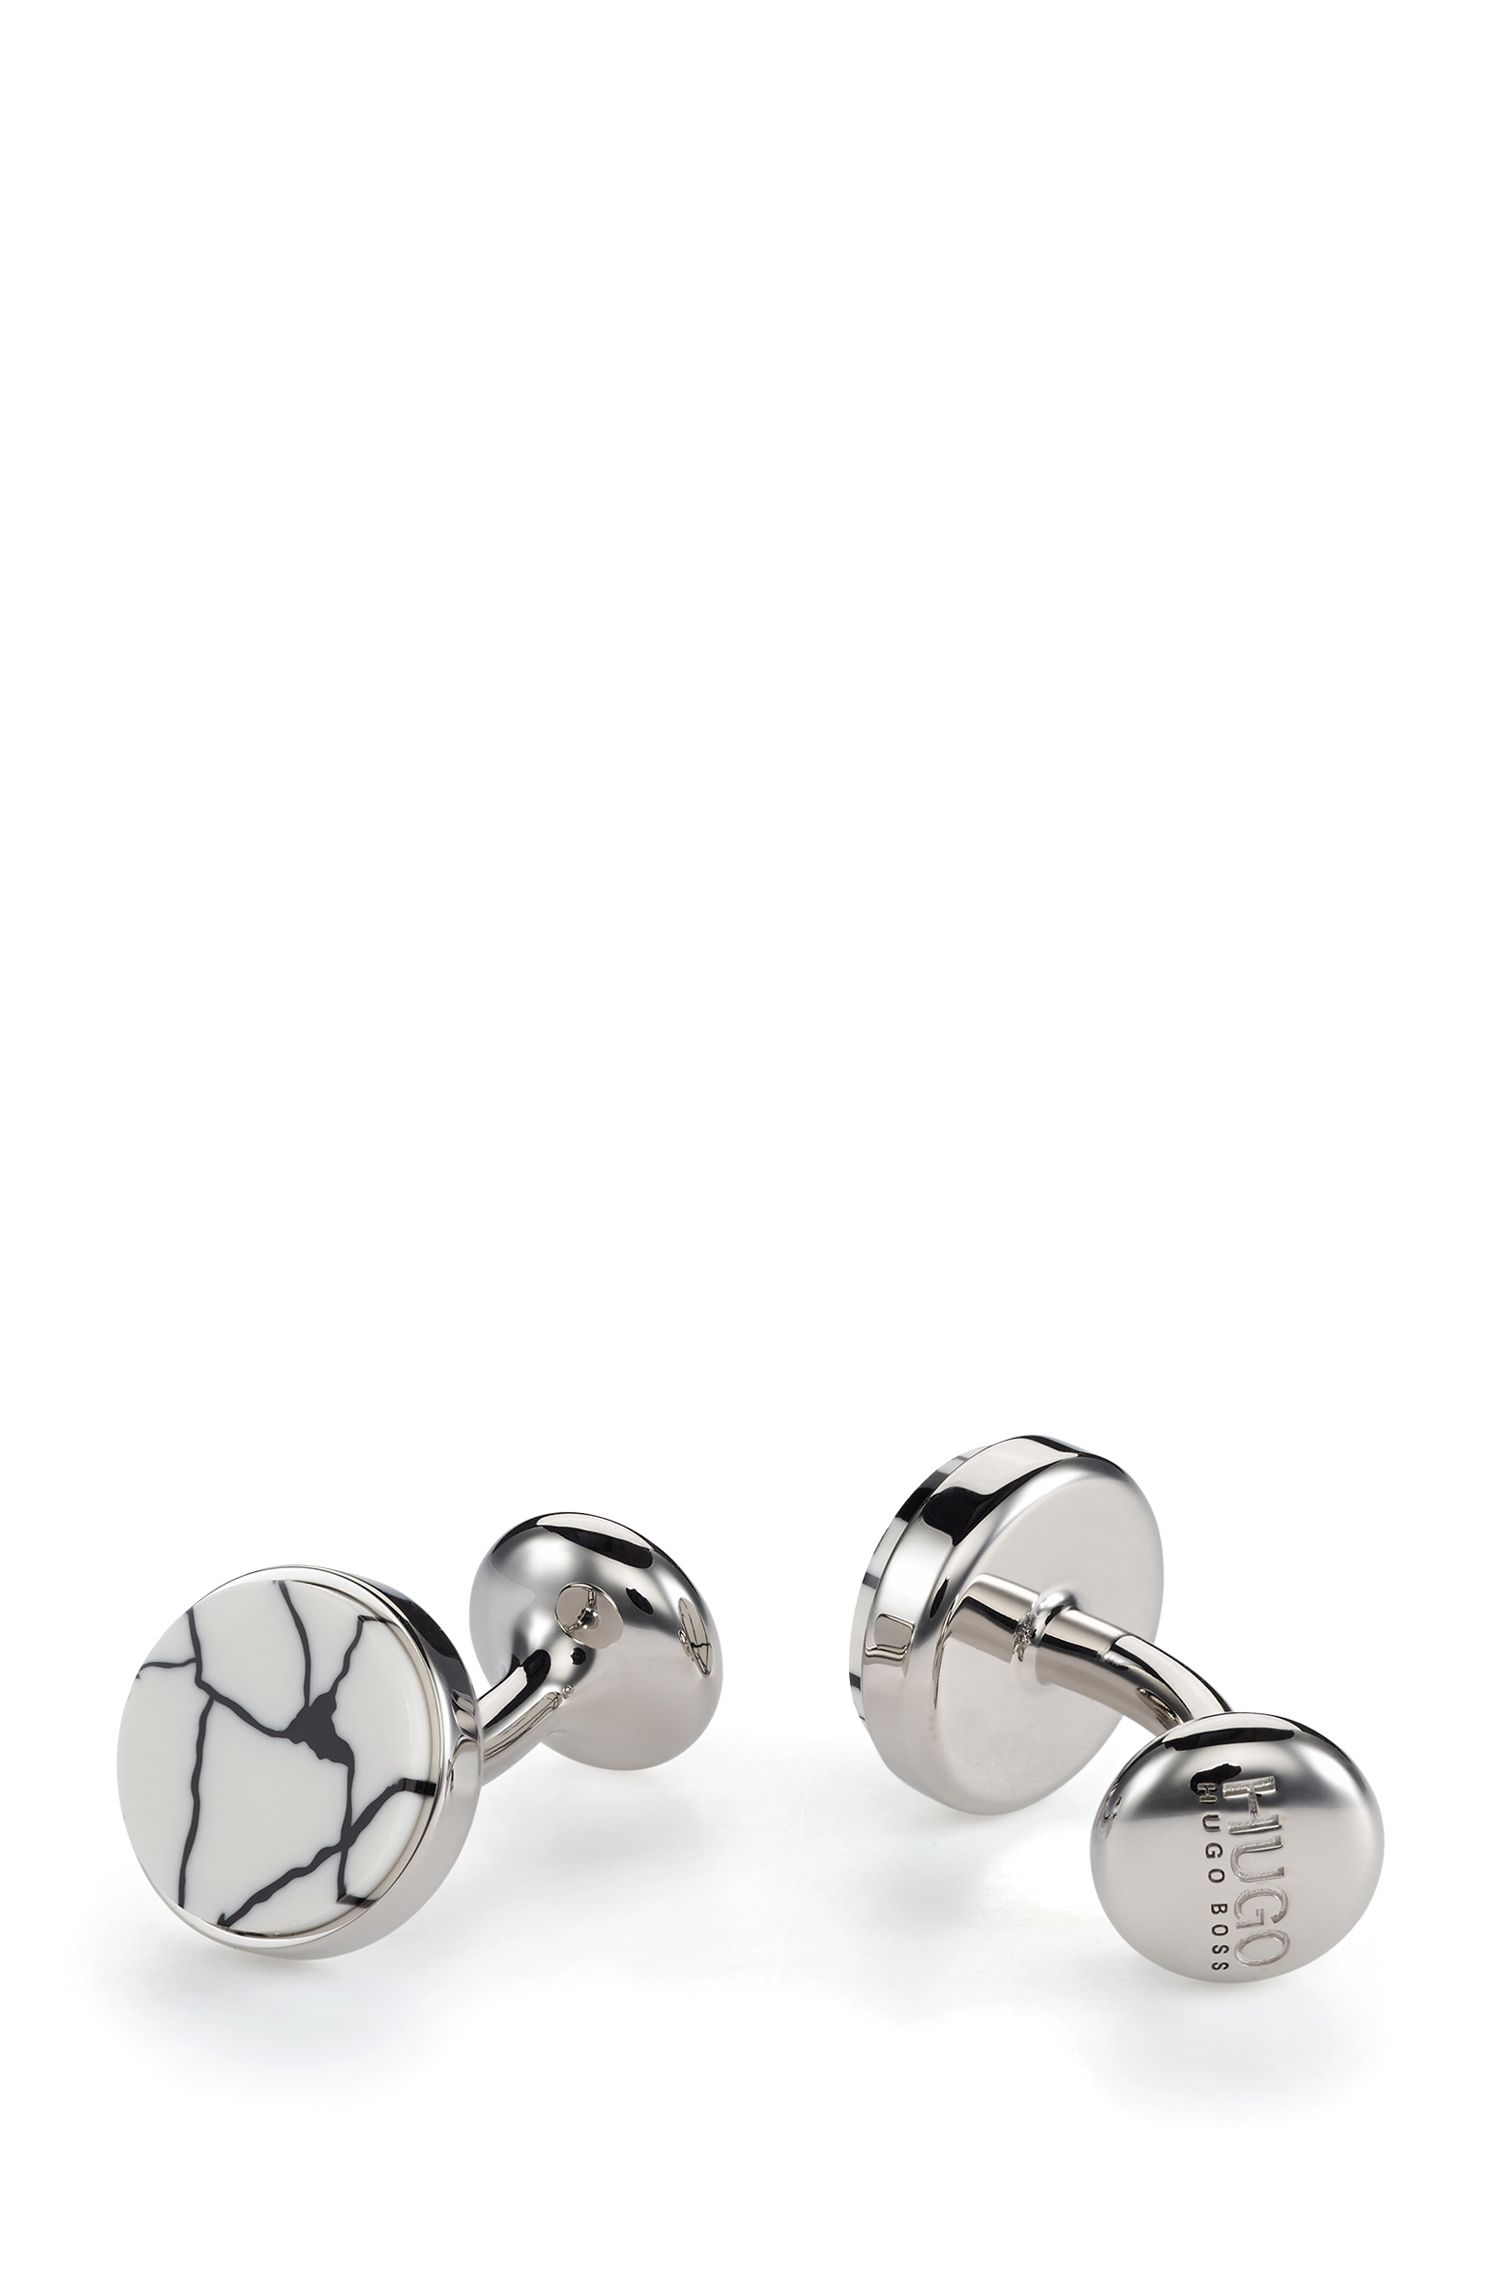 Round cufflinks with marbled enamel